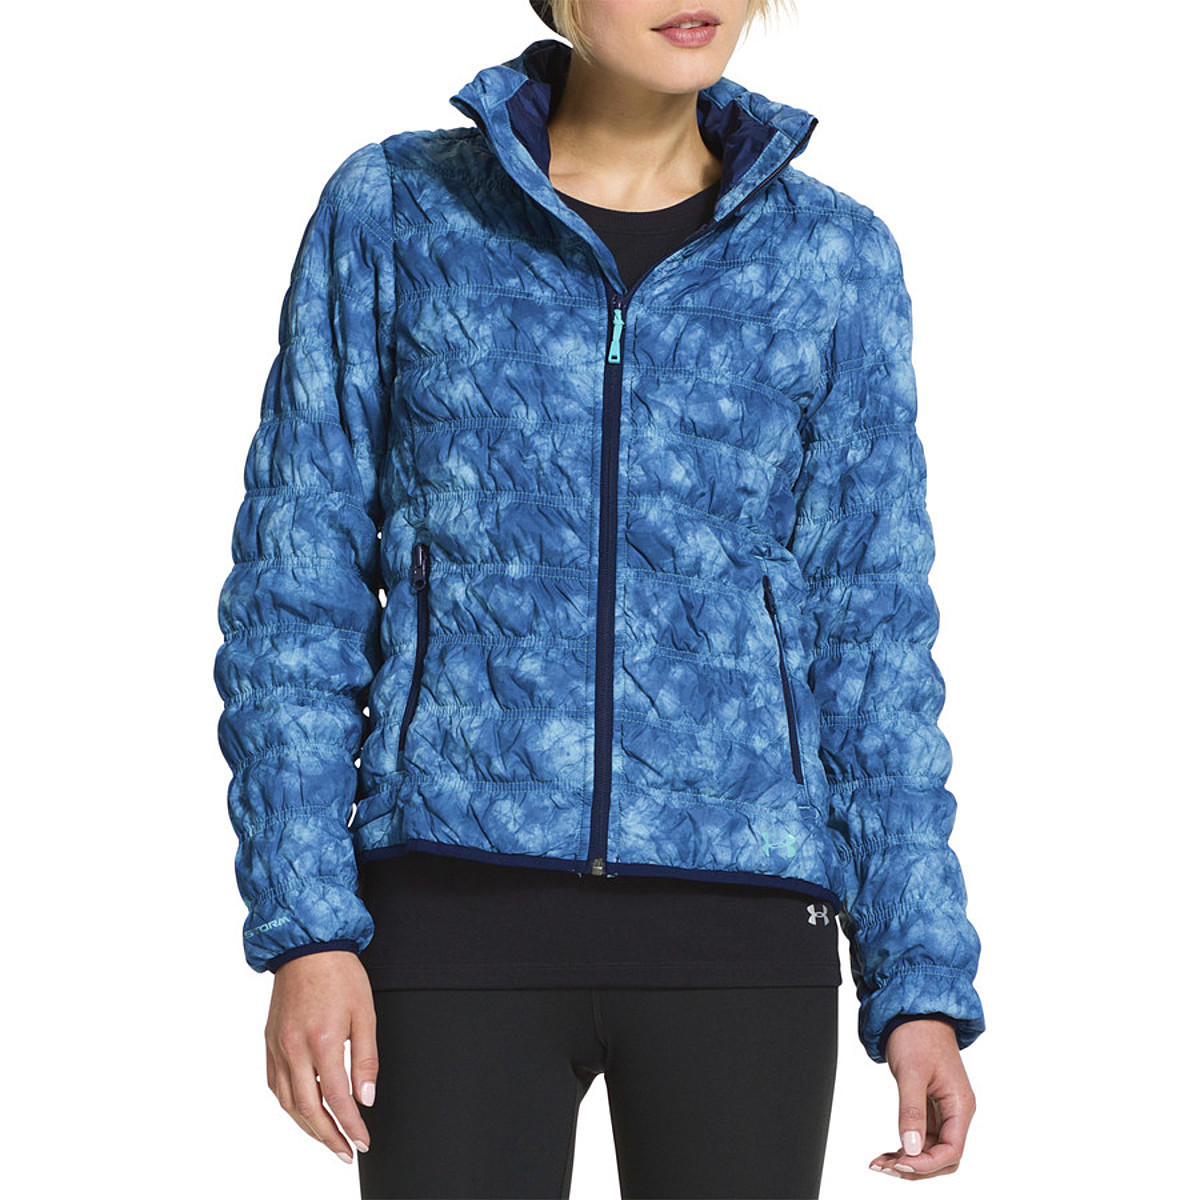 Under Armour Coldgear Infrared Nightfall Jacket